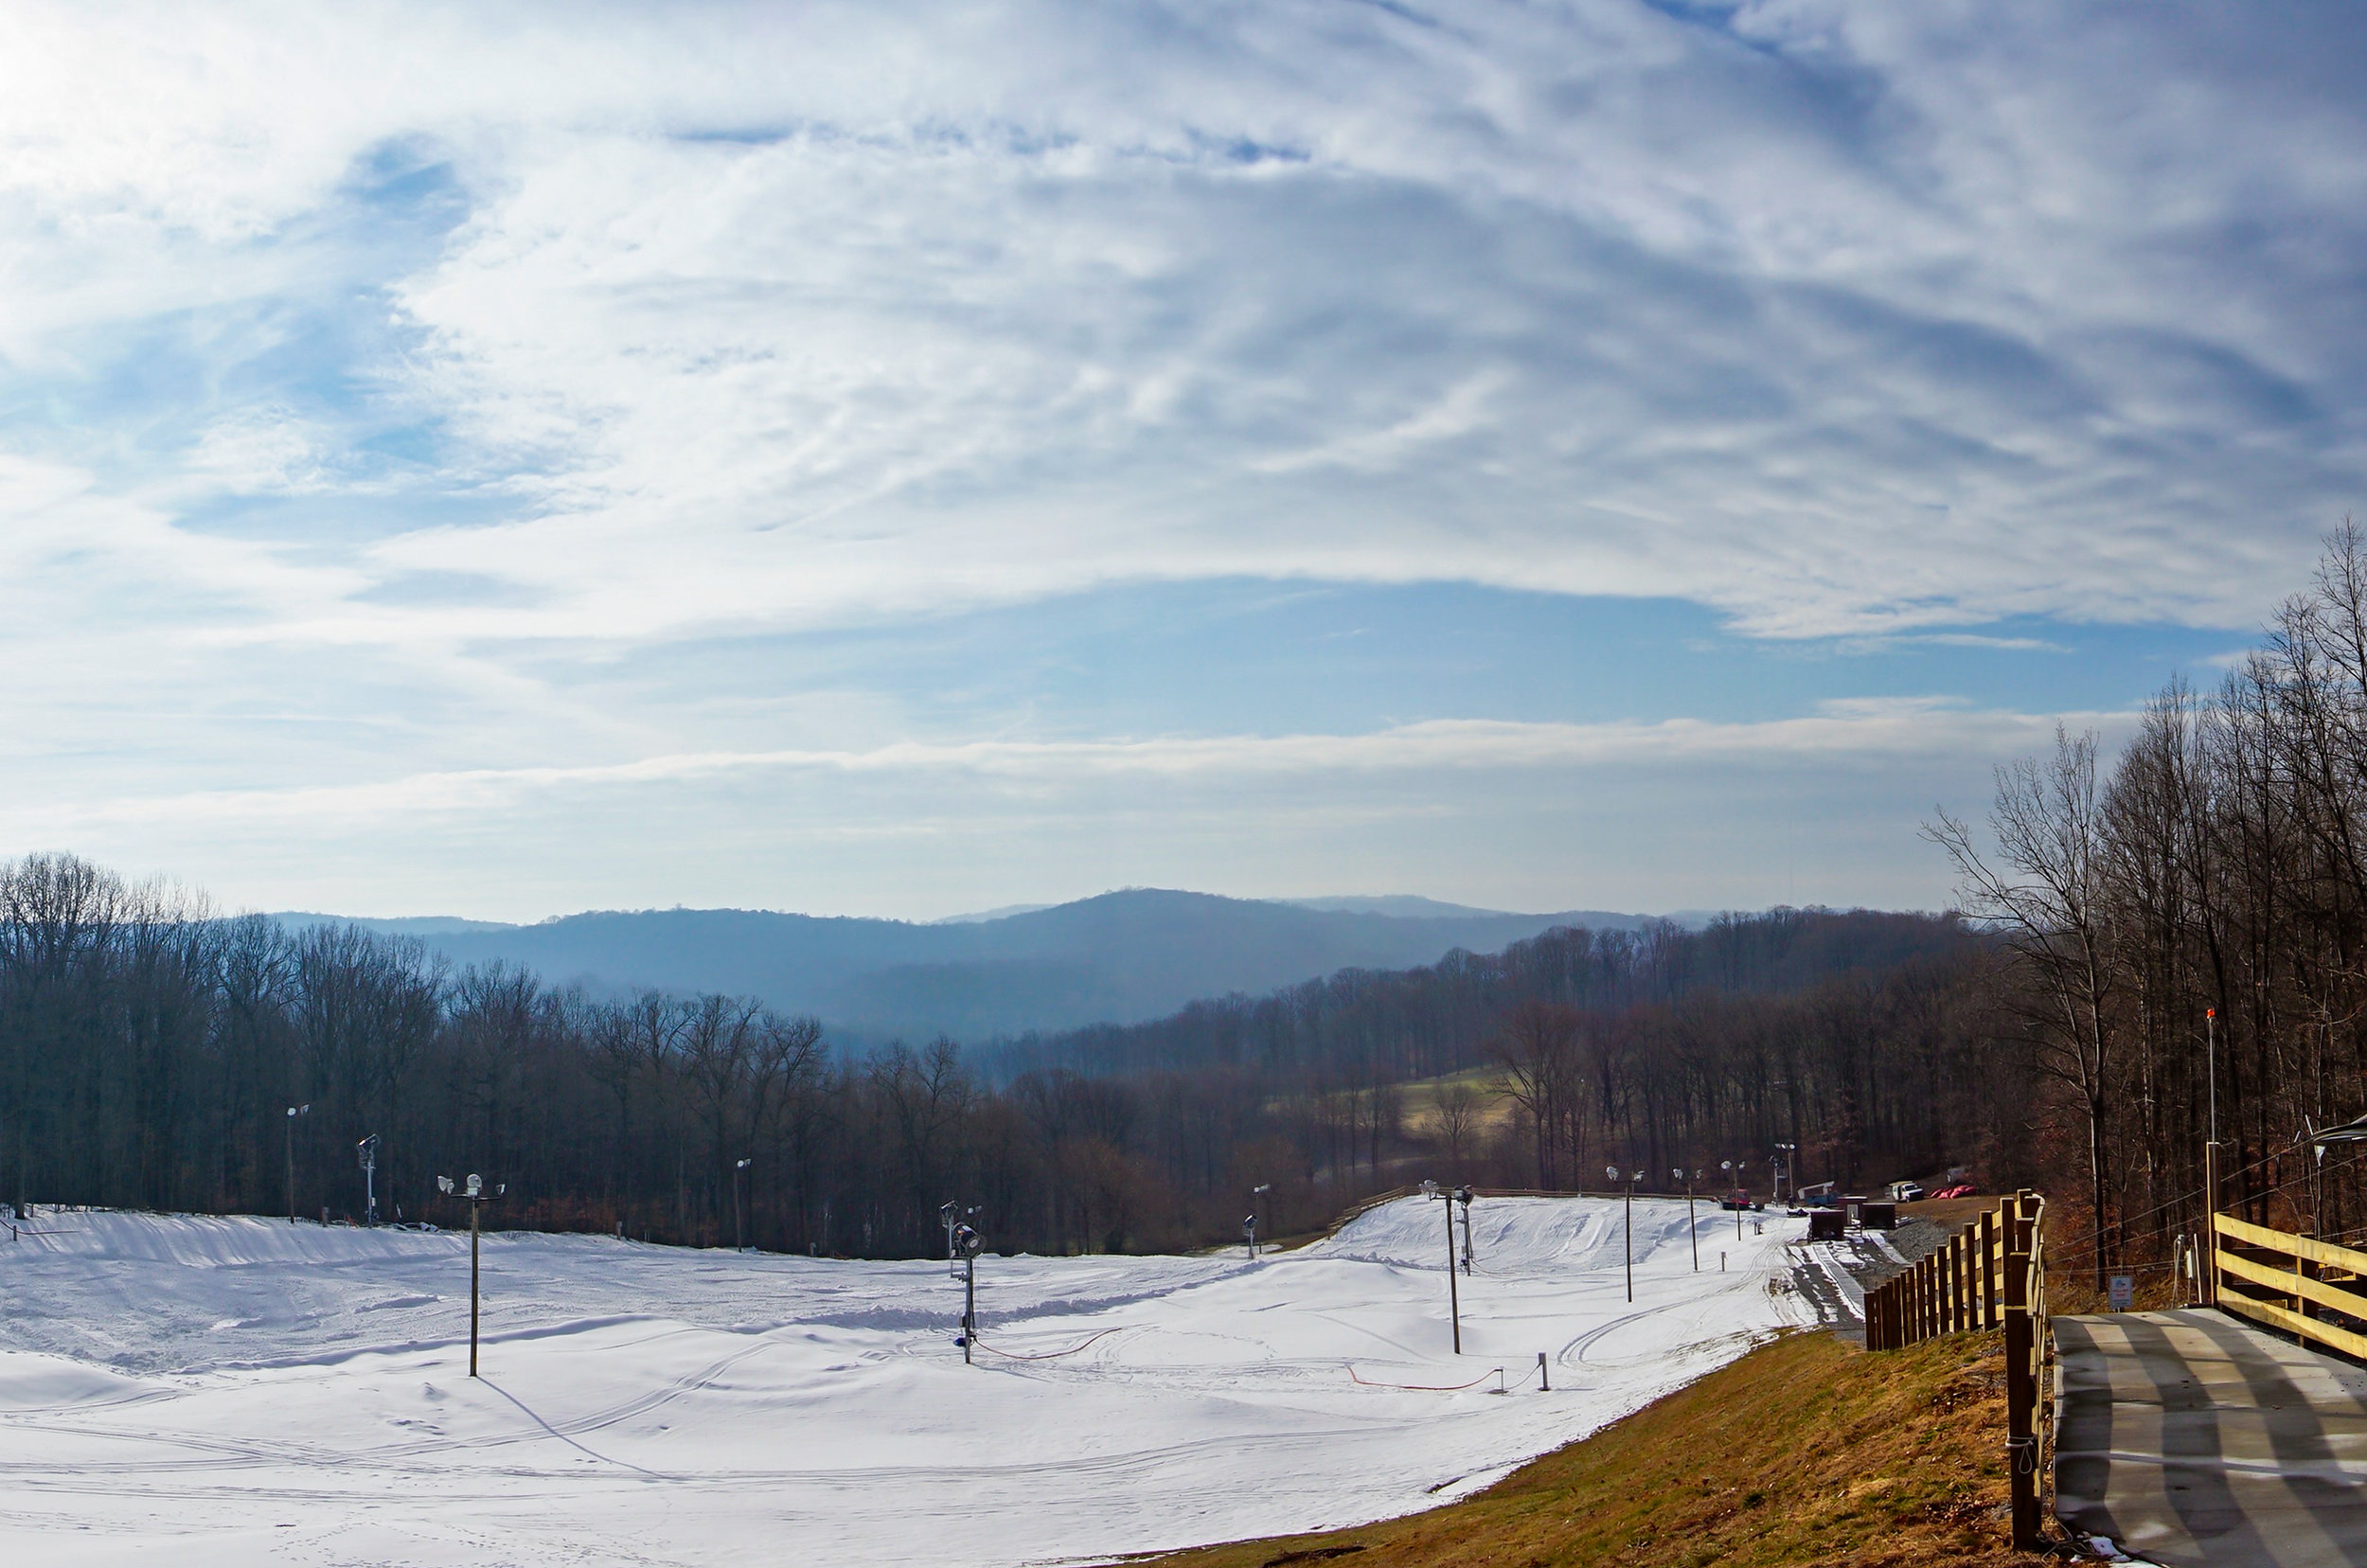 Iron Valley Tubing - The hills north east of Lancaster County are home to a fairly new winter attraction with a view.